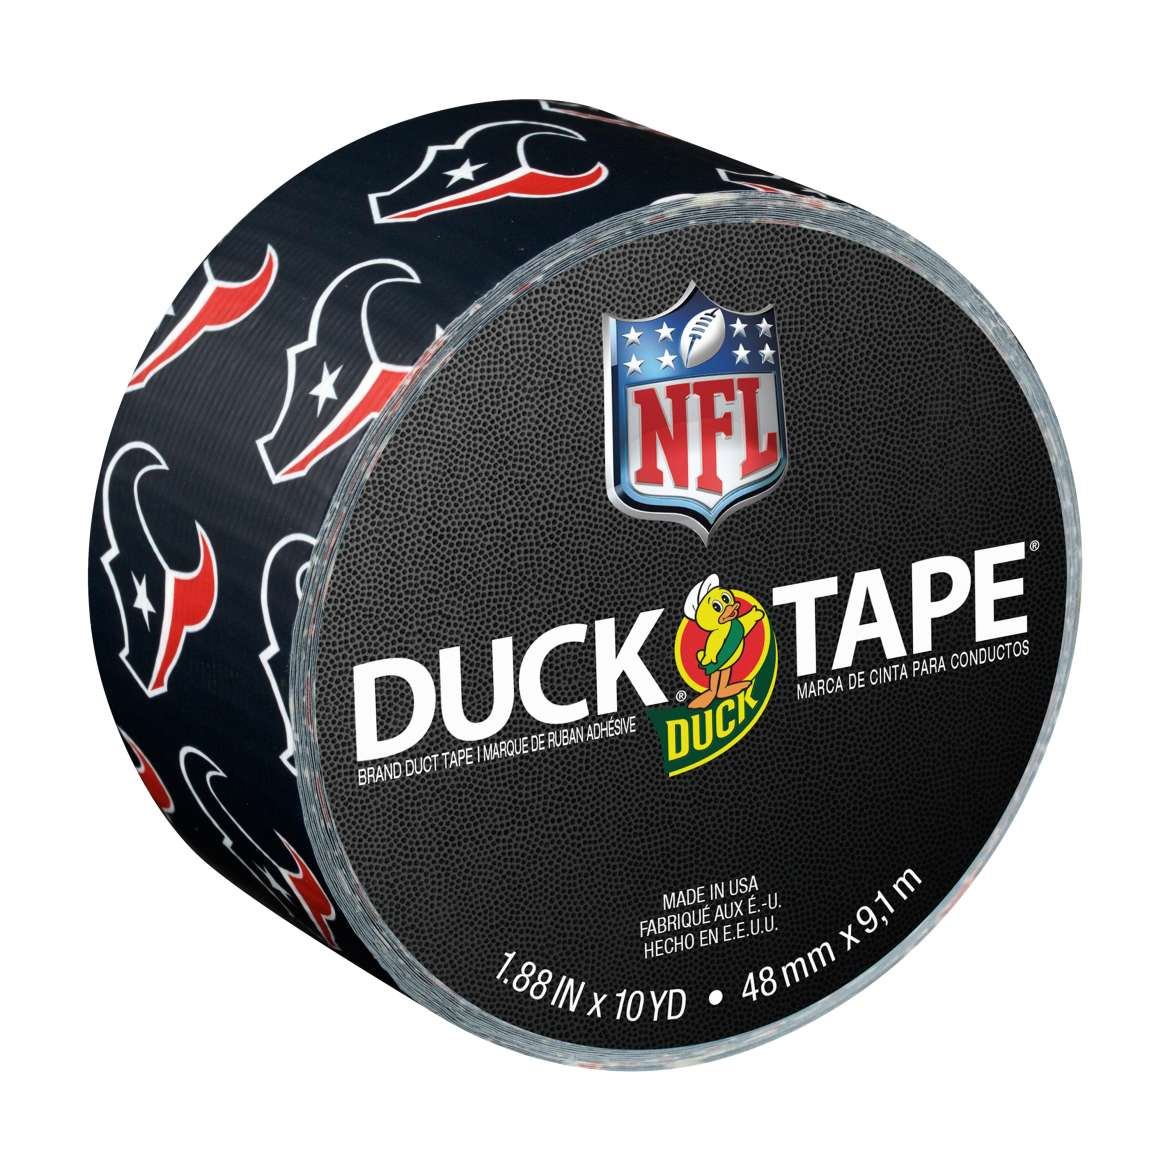 "Duck Brand Duct Tape, NFL Duck Tape, 1.88"" x 10 yard, Houston Texans"